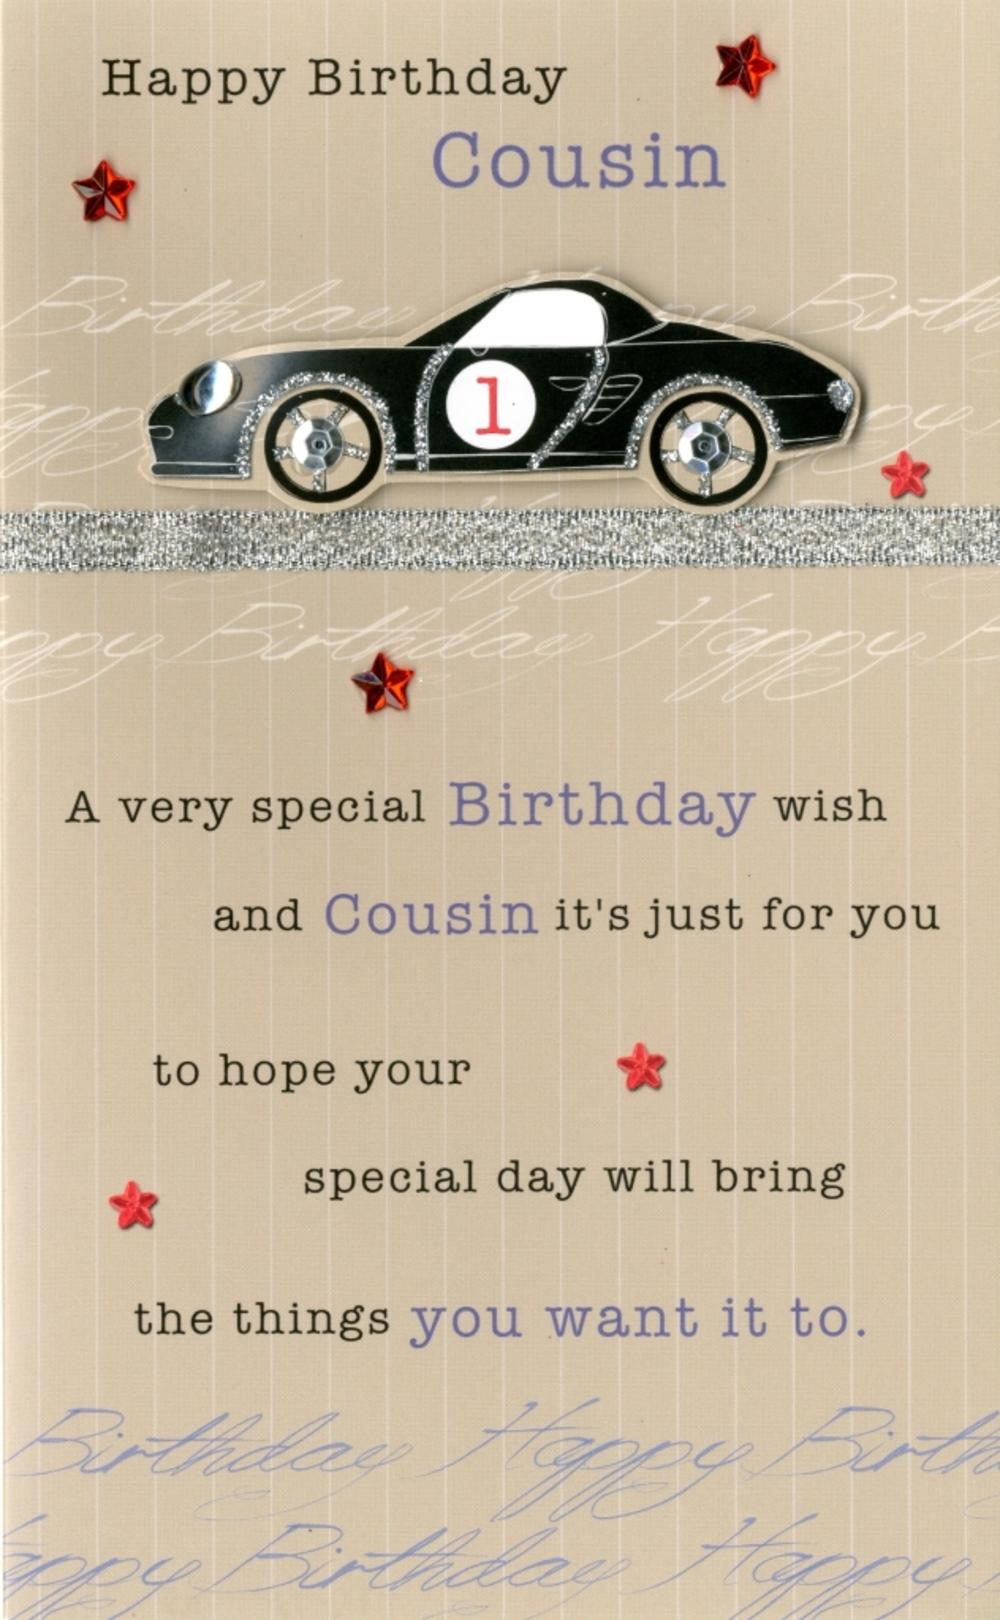 Happy Birthday Cousin Embellished Greeting Card Cards – Happy Birthday Cousin Card